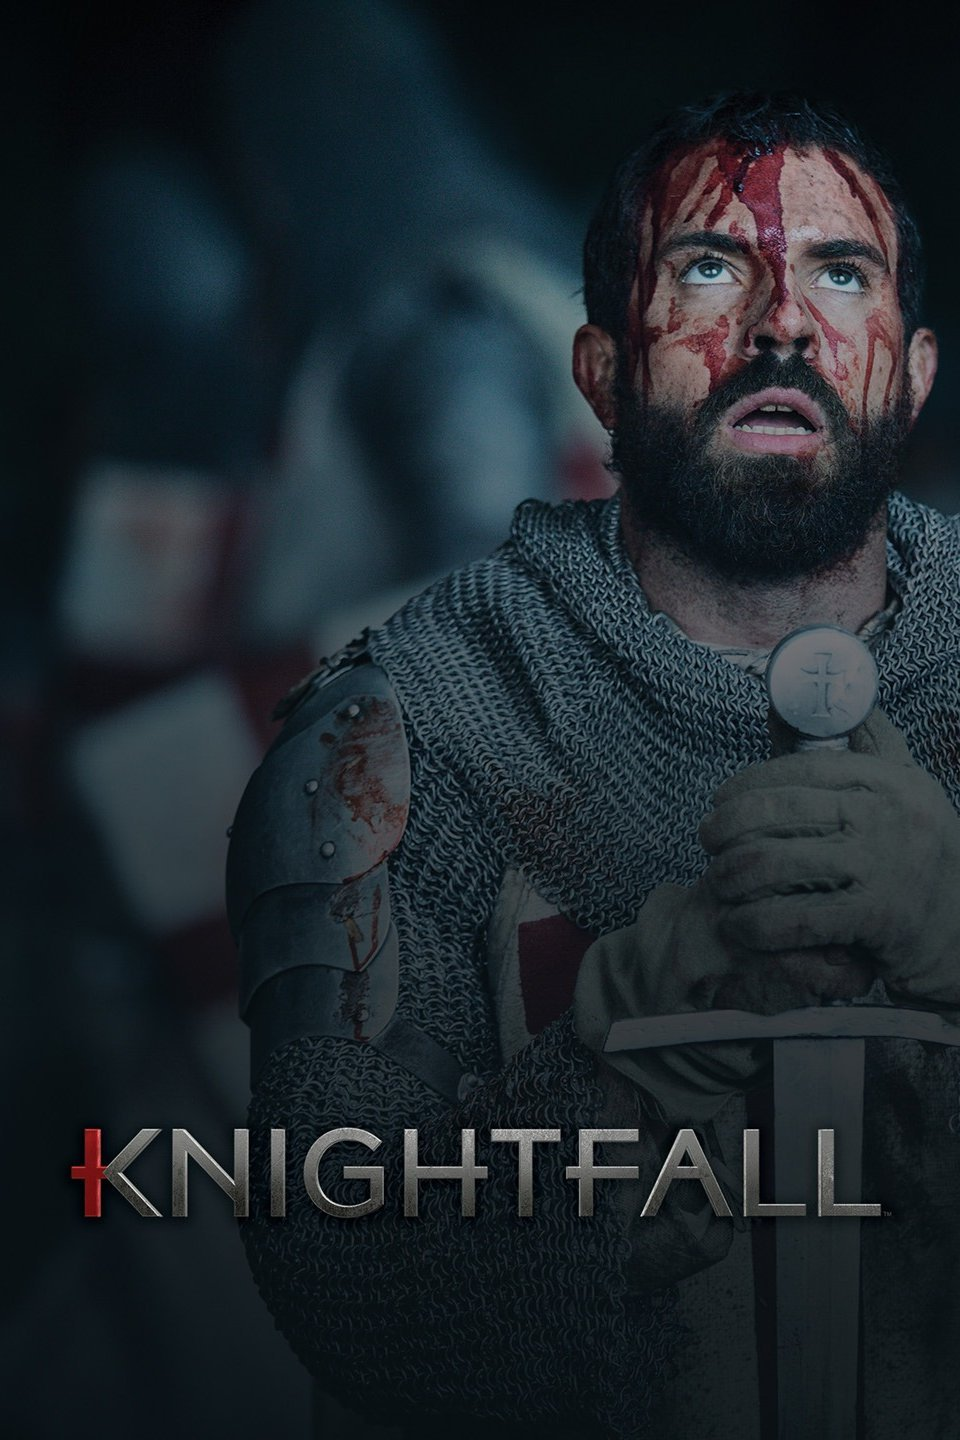 Knightfall 2017: Season 1 - Full (1/10)